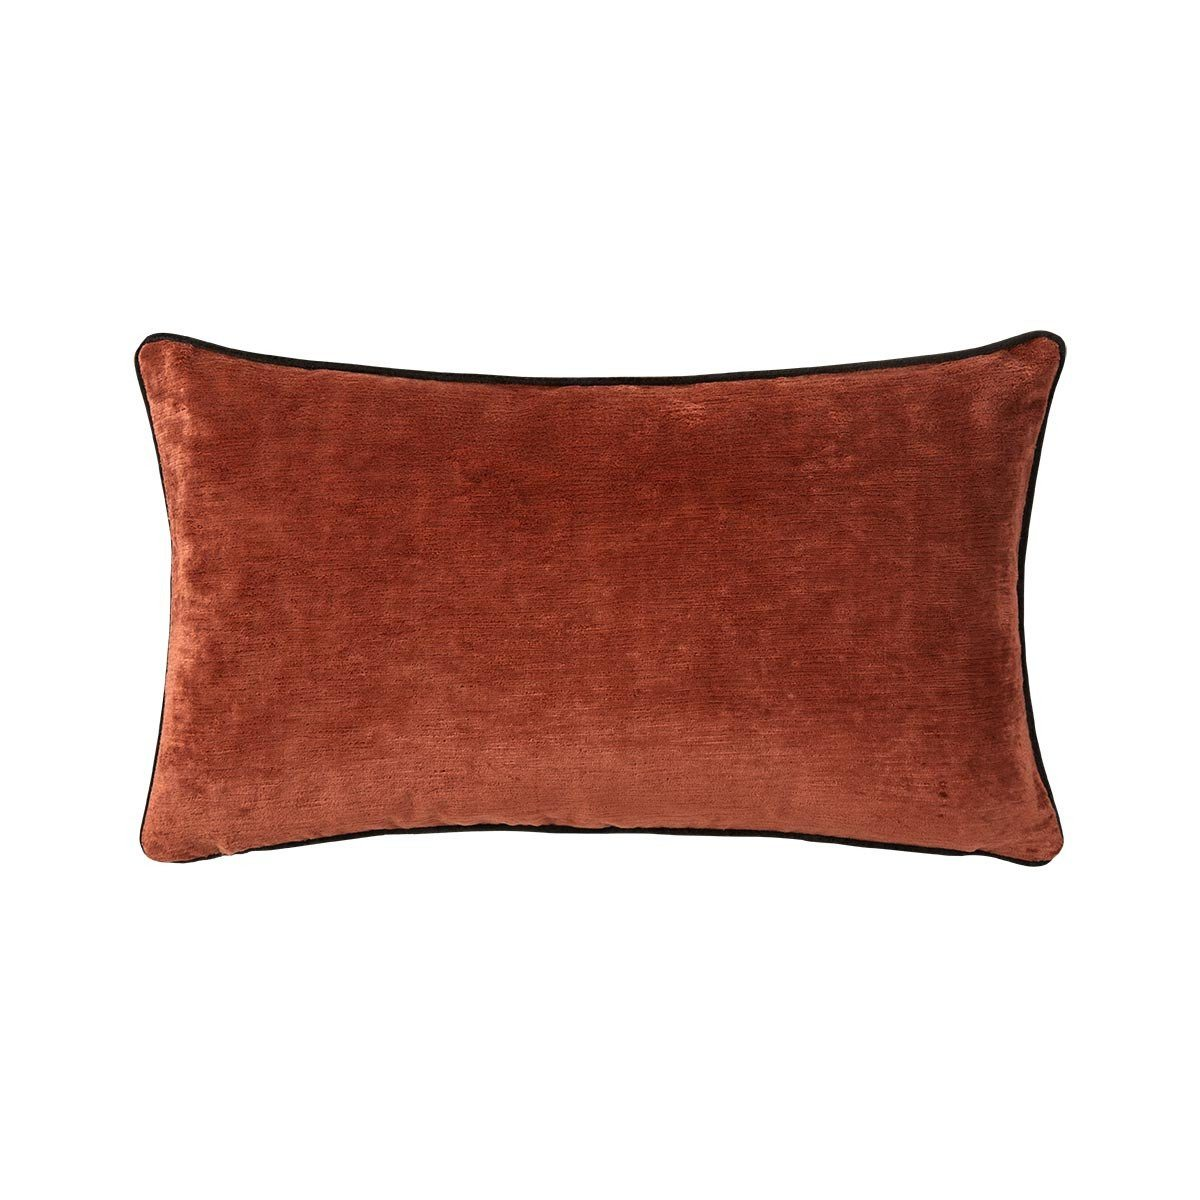 Boromee Ambre Lumbar Pillow by Iosis